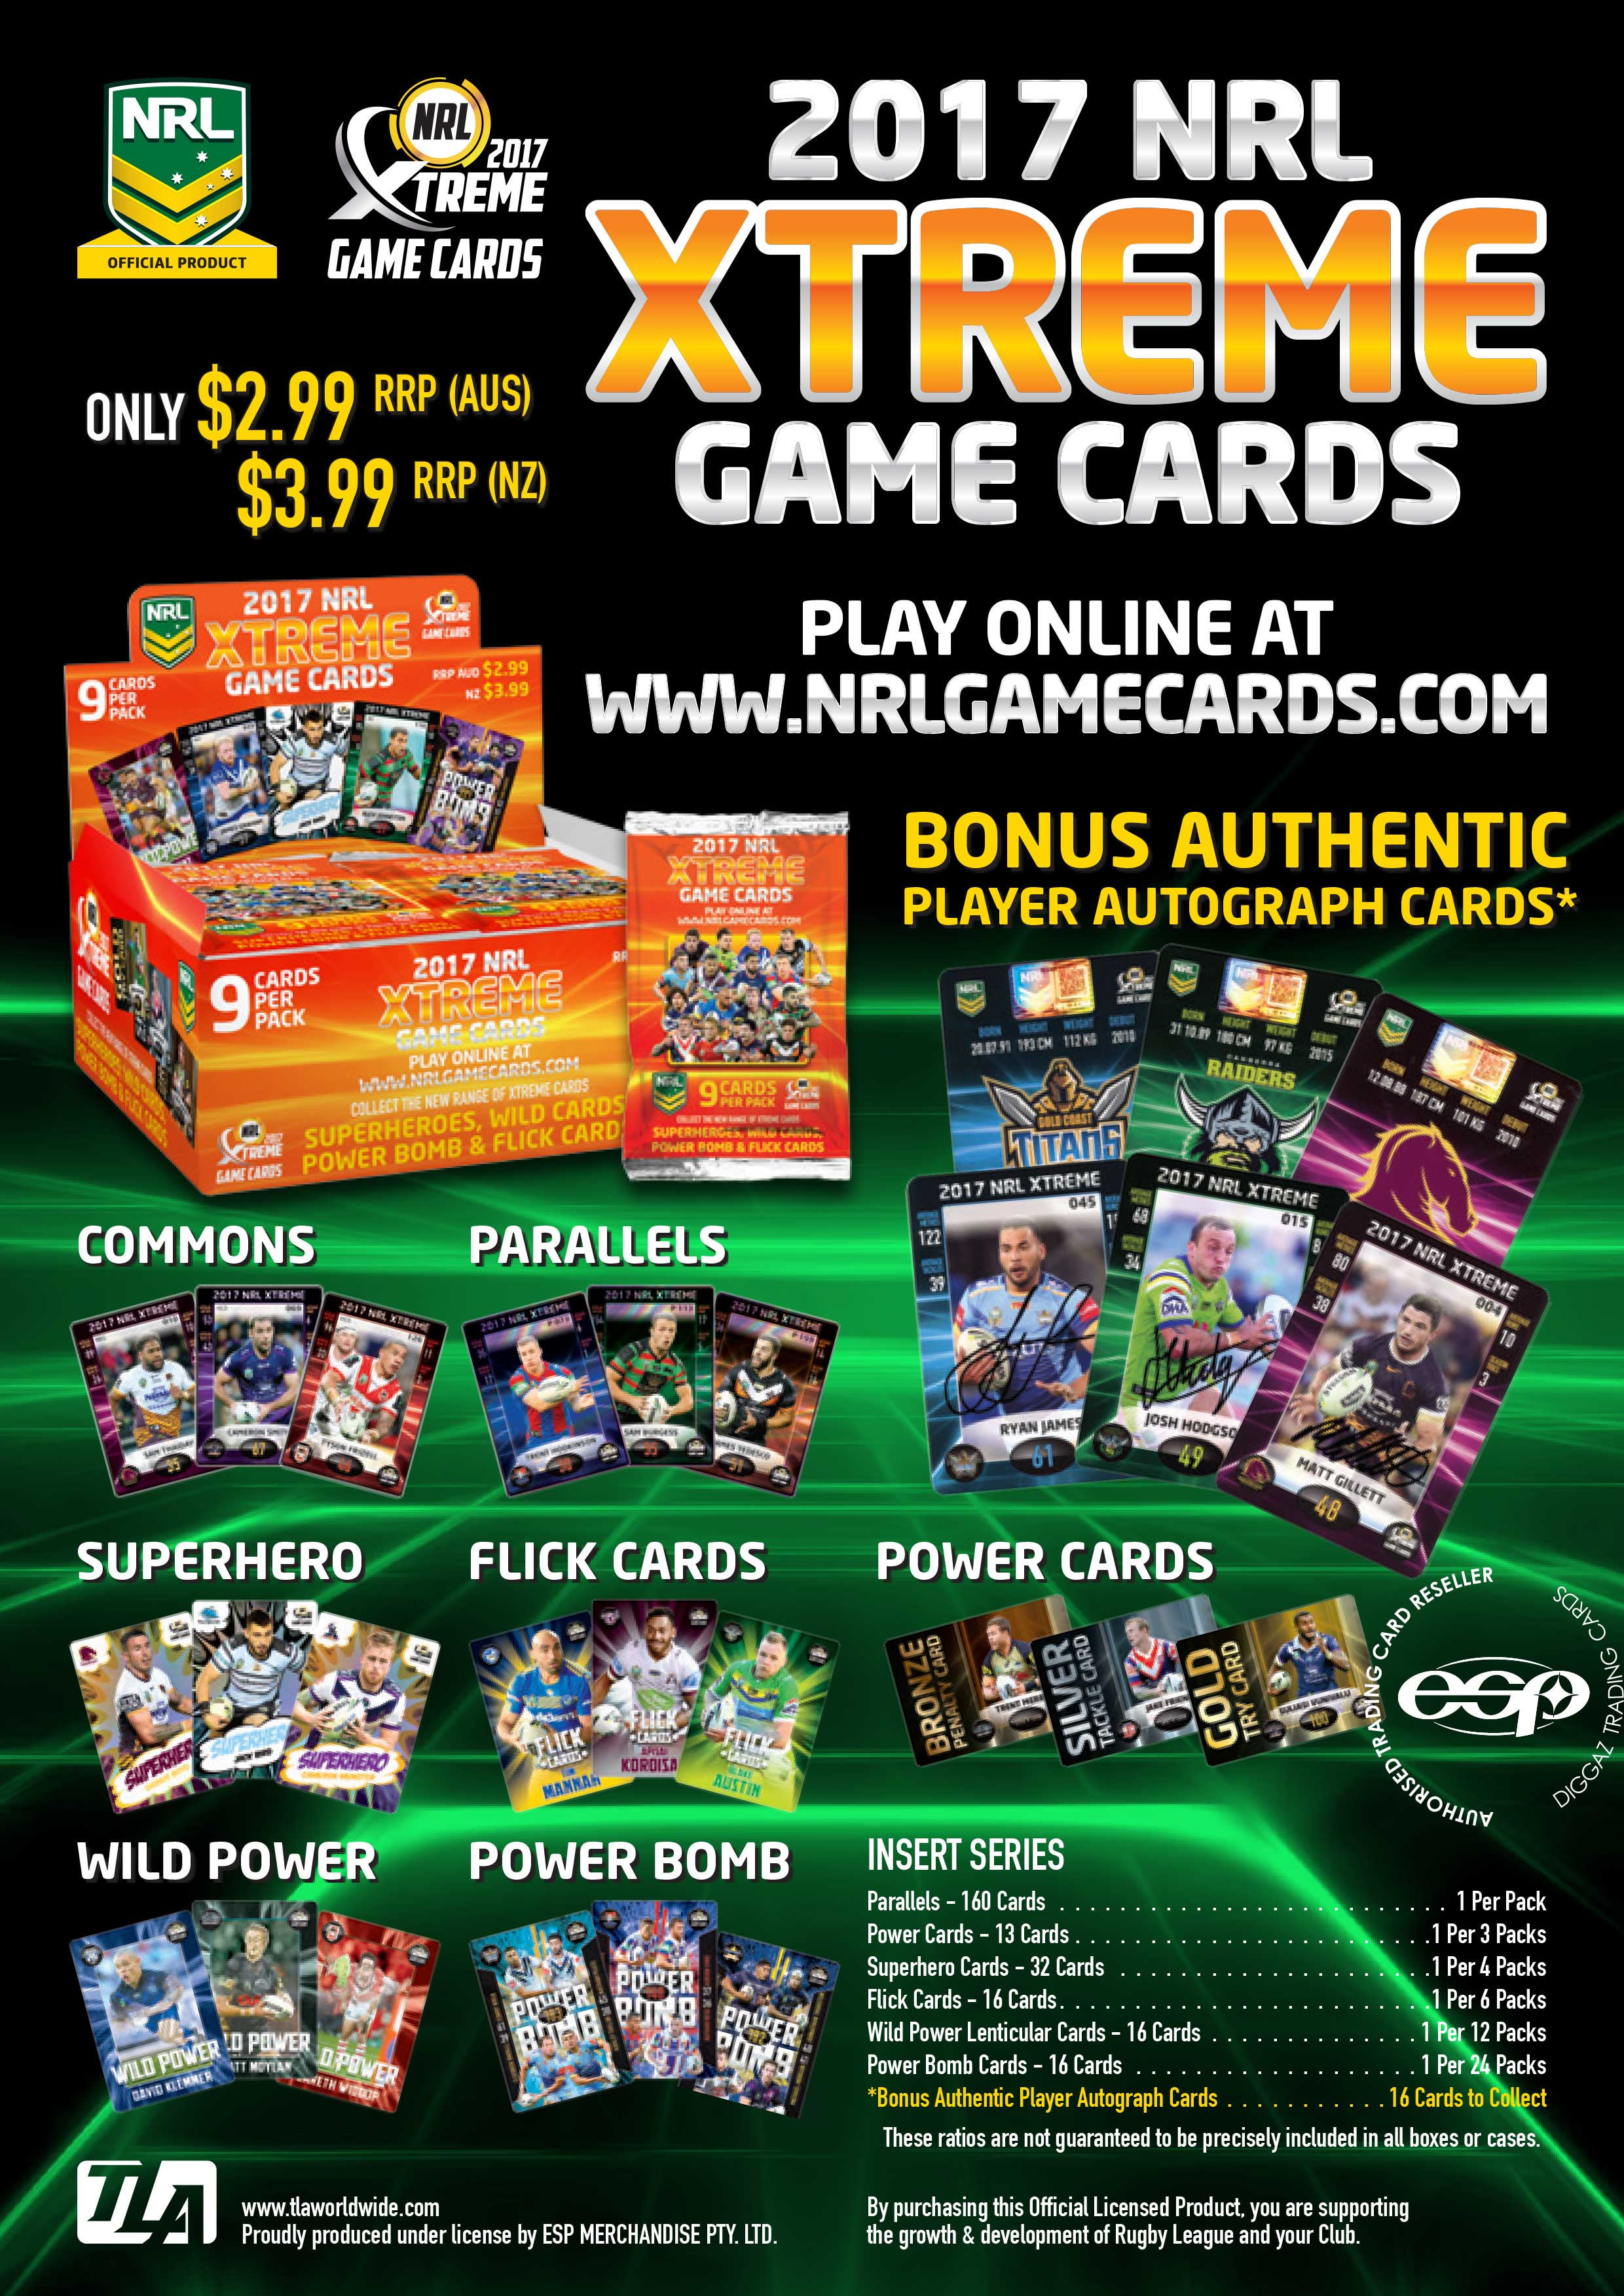 2017 NRL Xtreme Game Cards